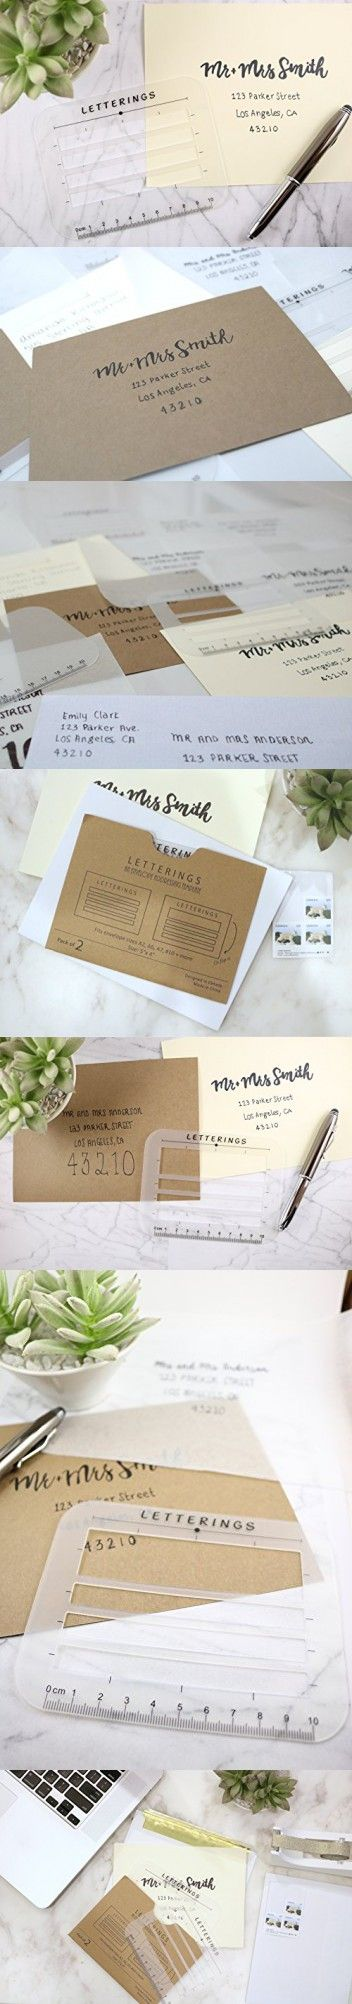 wedding invitation label templates%0A biology cover letters